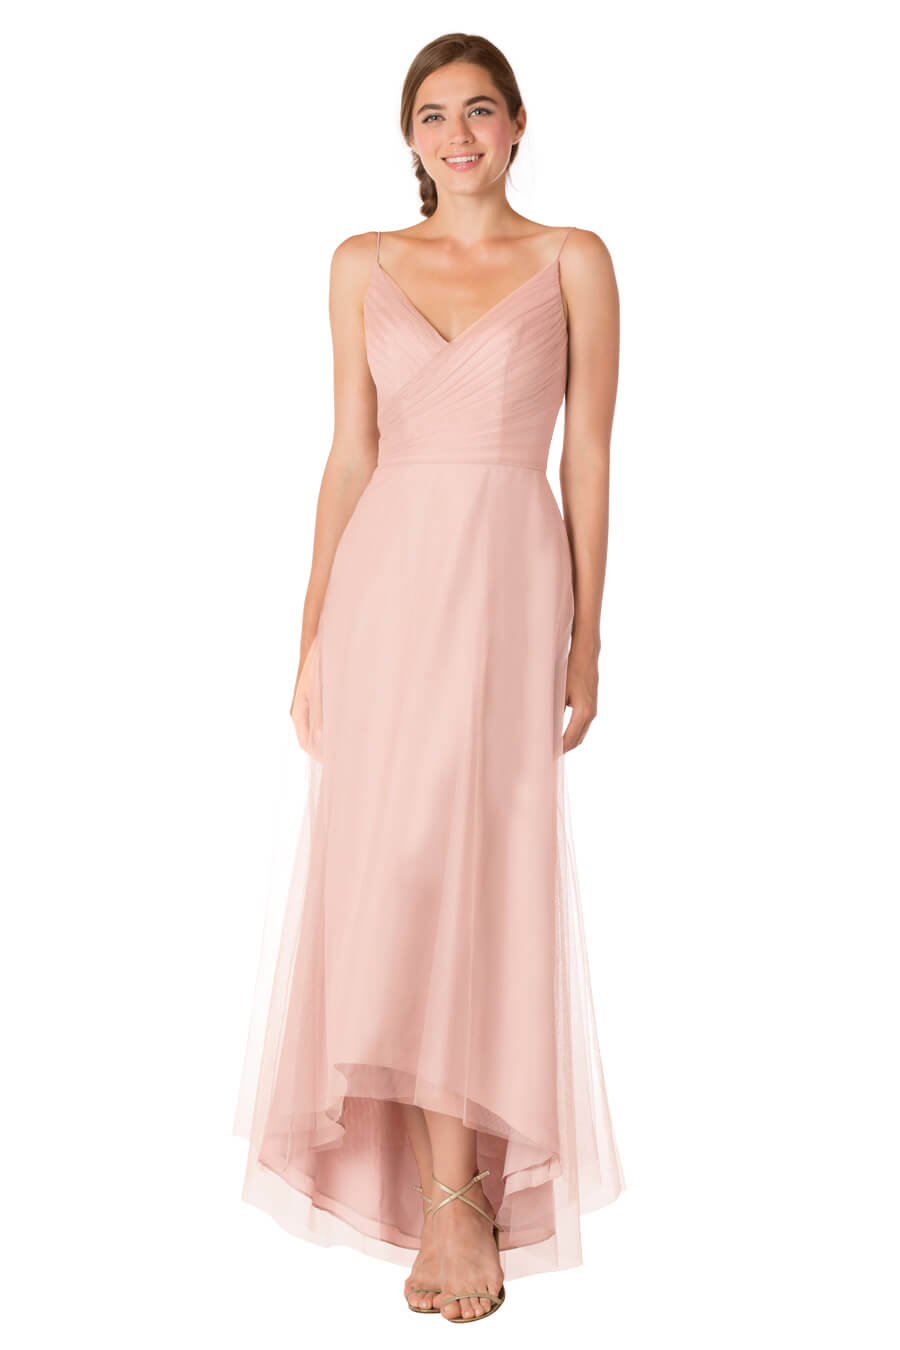 STYLE: 1714 | Bridesmaid Dresses, Evening Gowns & Flower Girl ...